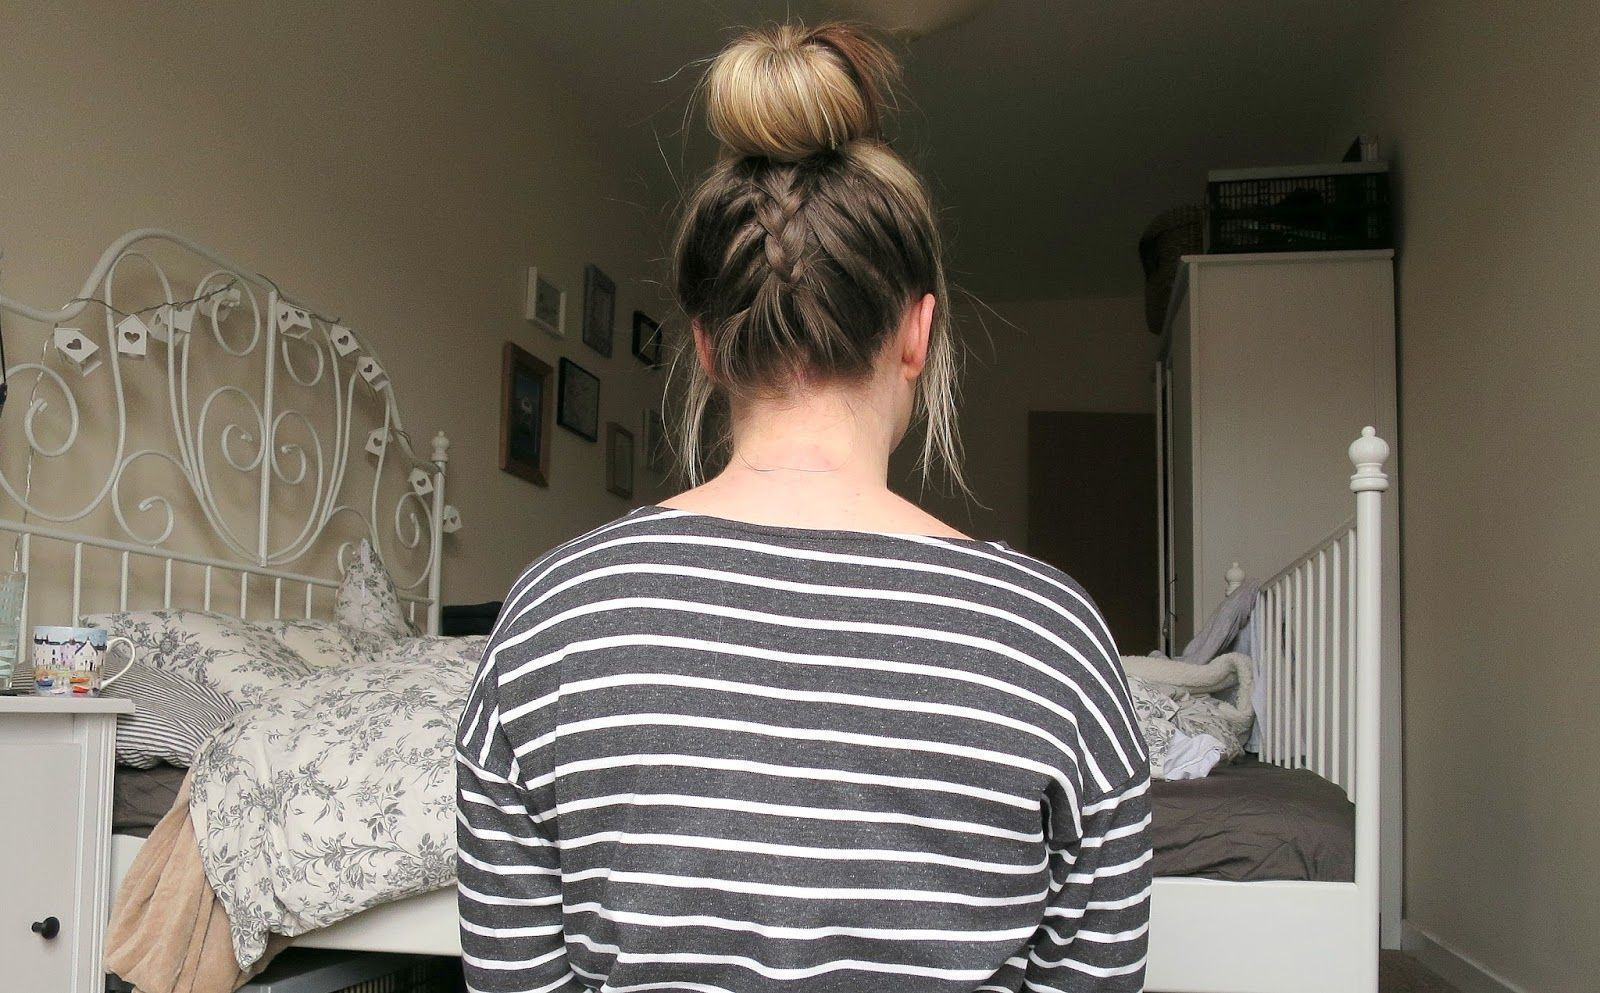 Hair Style Plaited Braided Top Knot Messy Bun Casual #braidedtopknots Hair Style Plaited Braided Top Knot Messy Bun Casual #braidedtopknots Hair Style Plaited Braided Top Knot Messy Bun Casual #braidedtopknots Hair Style Plaited Braided Top Knot Messy Bun Casual #braidedtopknots Hair Style Plaited Braided Top Knot Messy Bun Casual #braidedtopknots Hair Style Plaited Braided Top Knot Messy Bun Casual #braidedtopknots Hair Style Plaited Braided Top Knot Messy Bun Casual #braidedtopknots Hair Style #topknotbunhowto